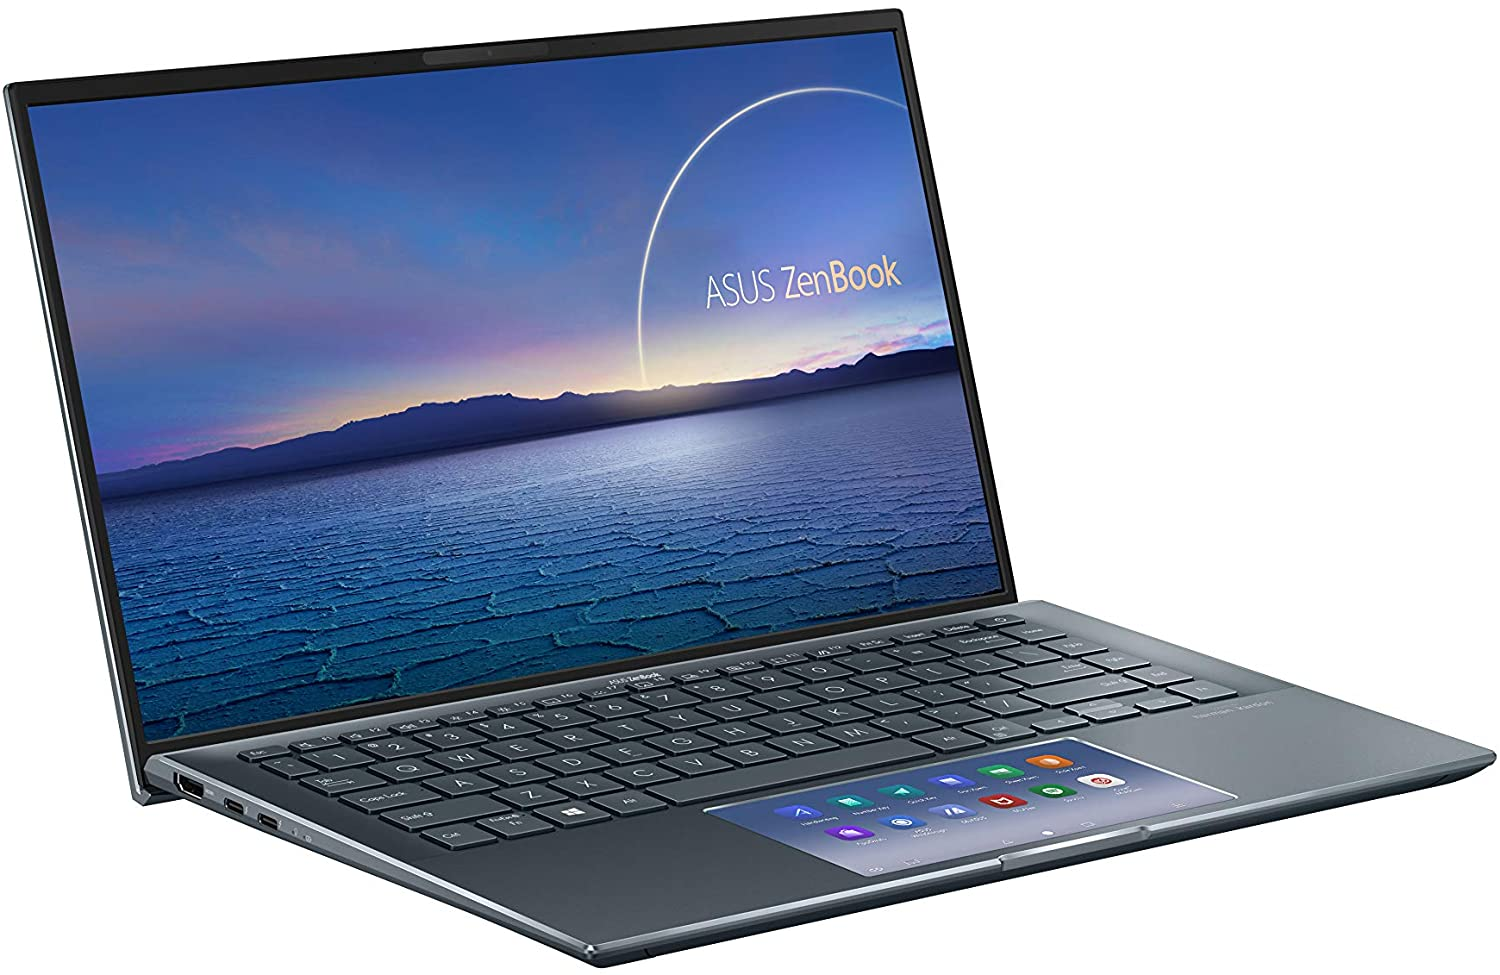 10 Best Laptop for Streaming Twitch in 2021 [Expert Picks]